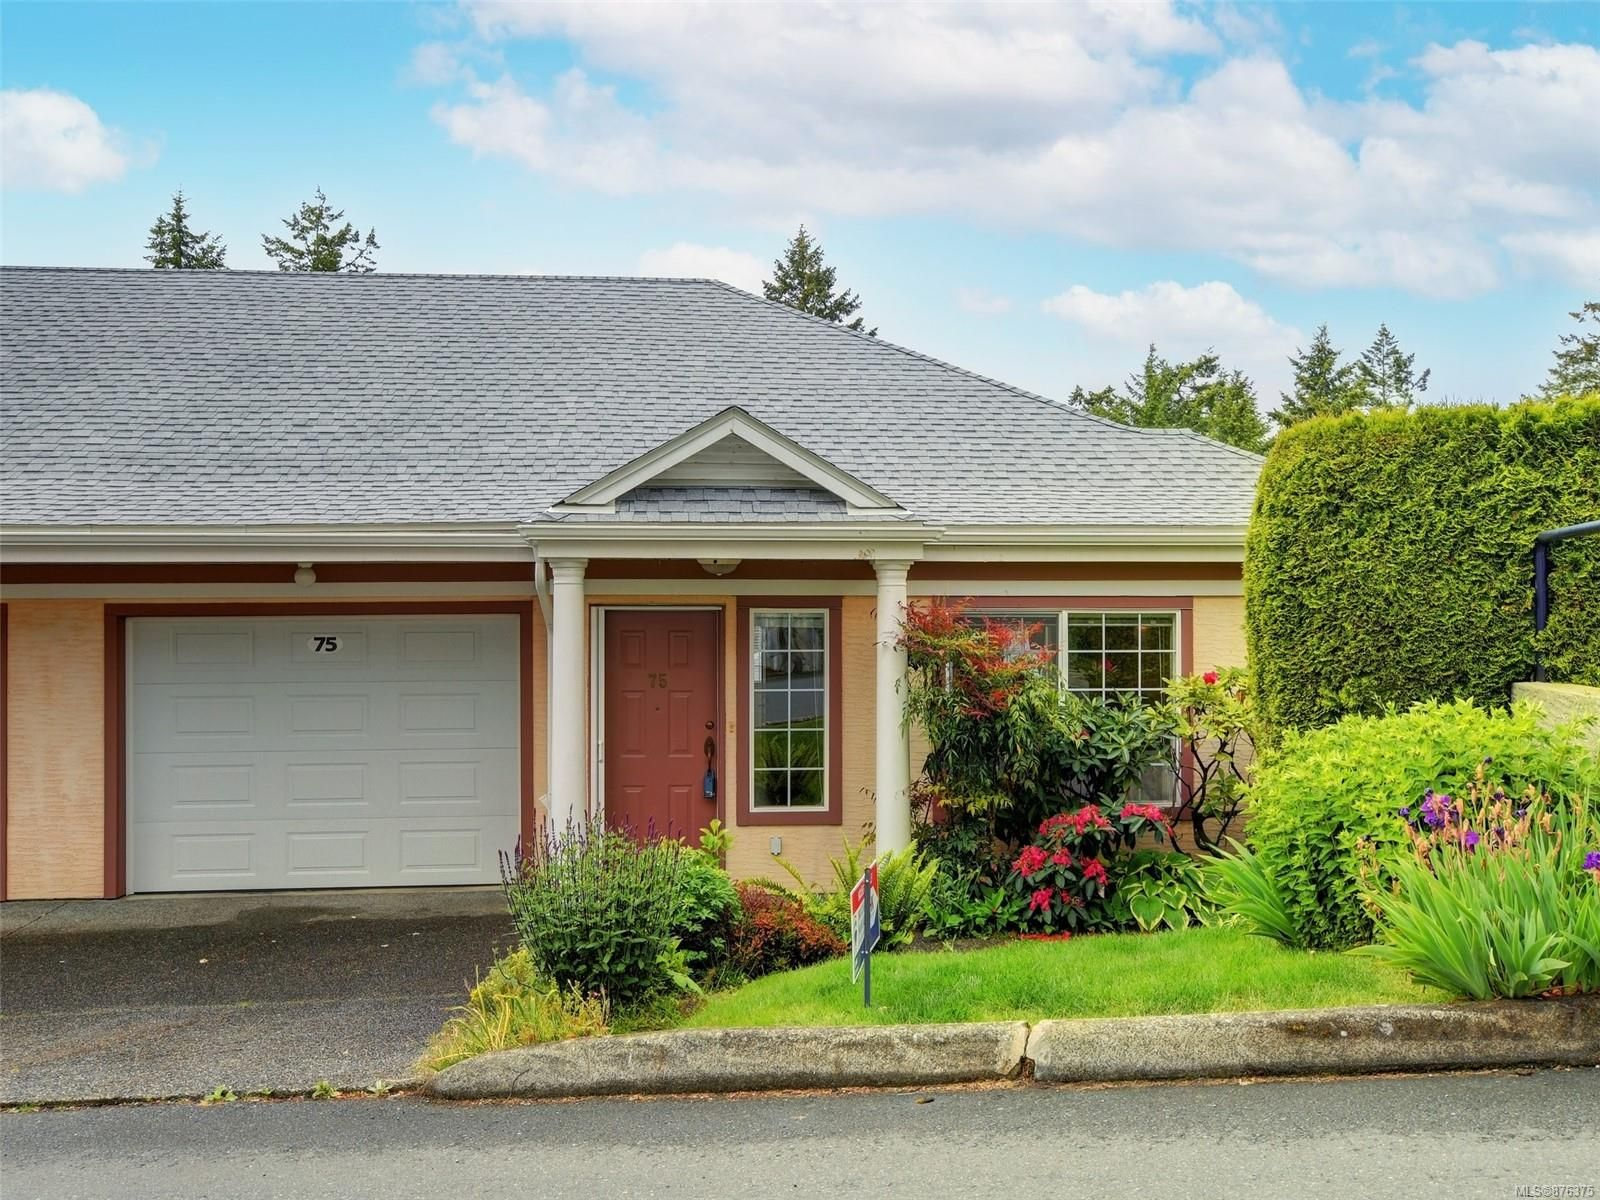 Main Photo: 75 14 Erskine Lane in : VR Hospital Row/Townhouse for sale (View Royal)  : MLS®# 876375